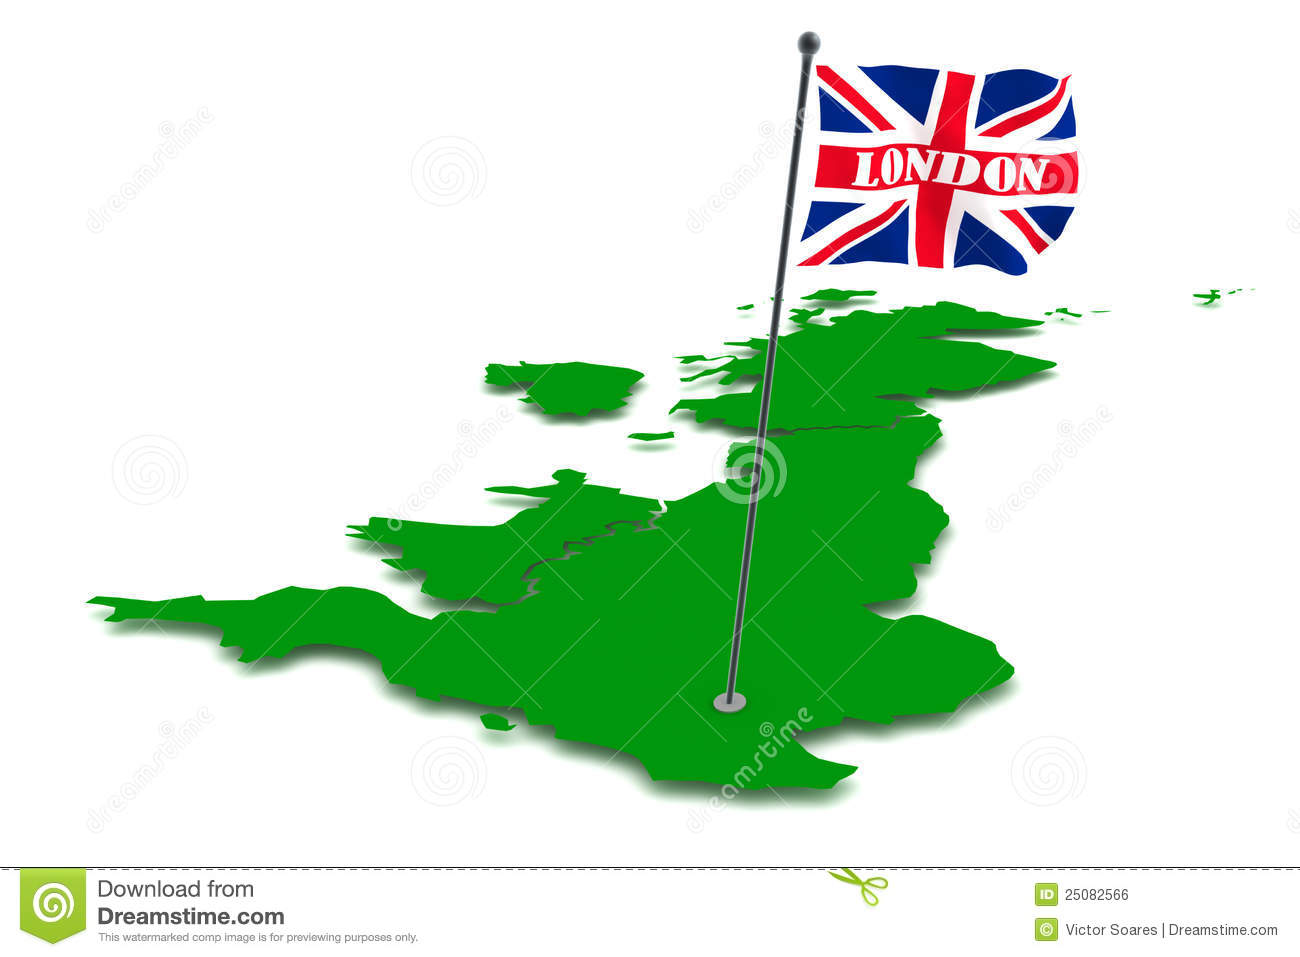 London On The Map Of England.London Capital Of England Stock Illustration Illustration Of Flag